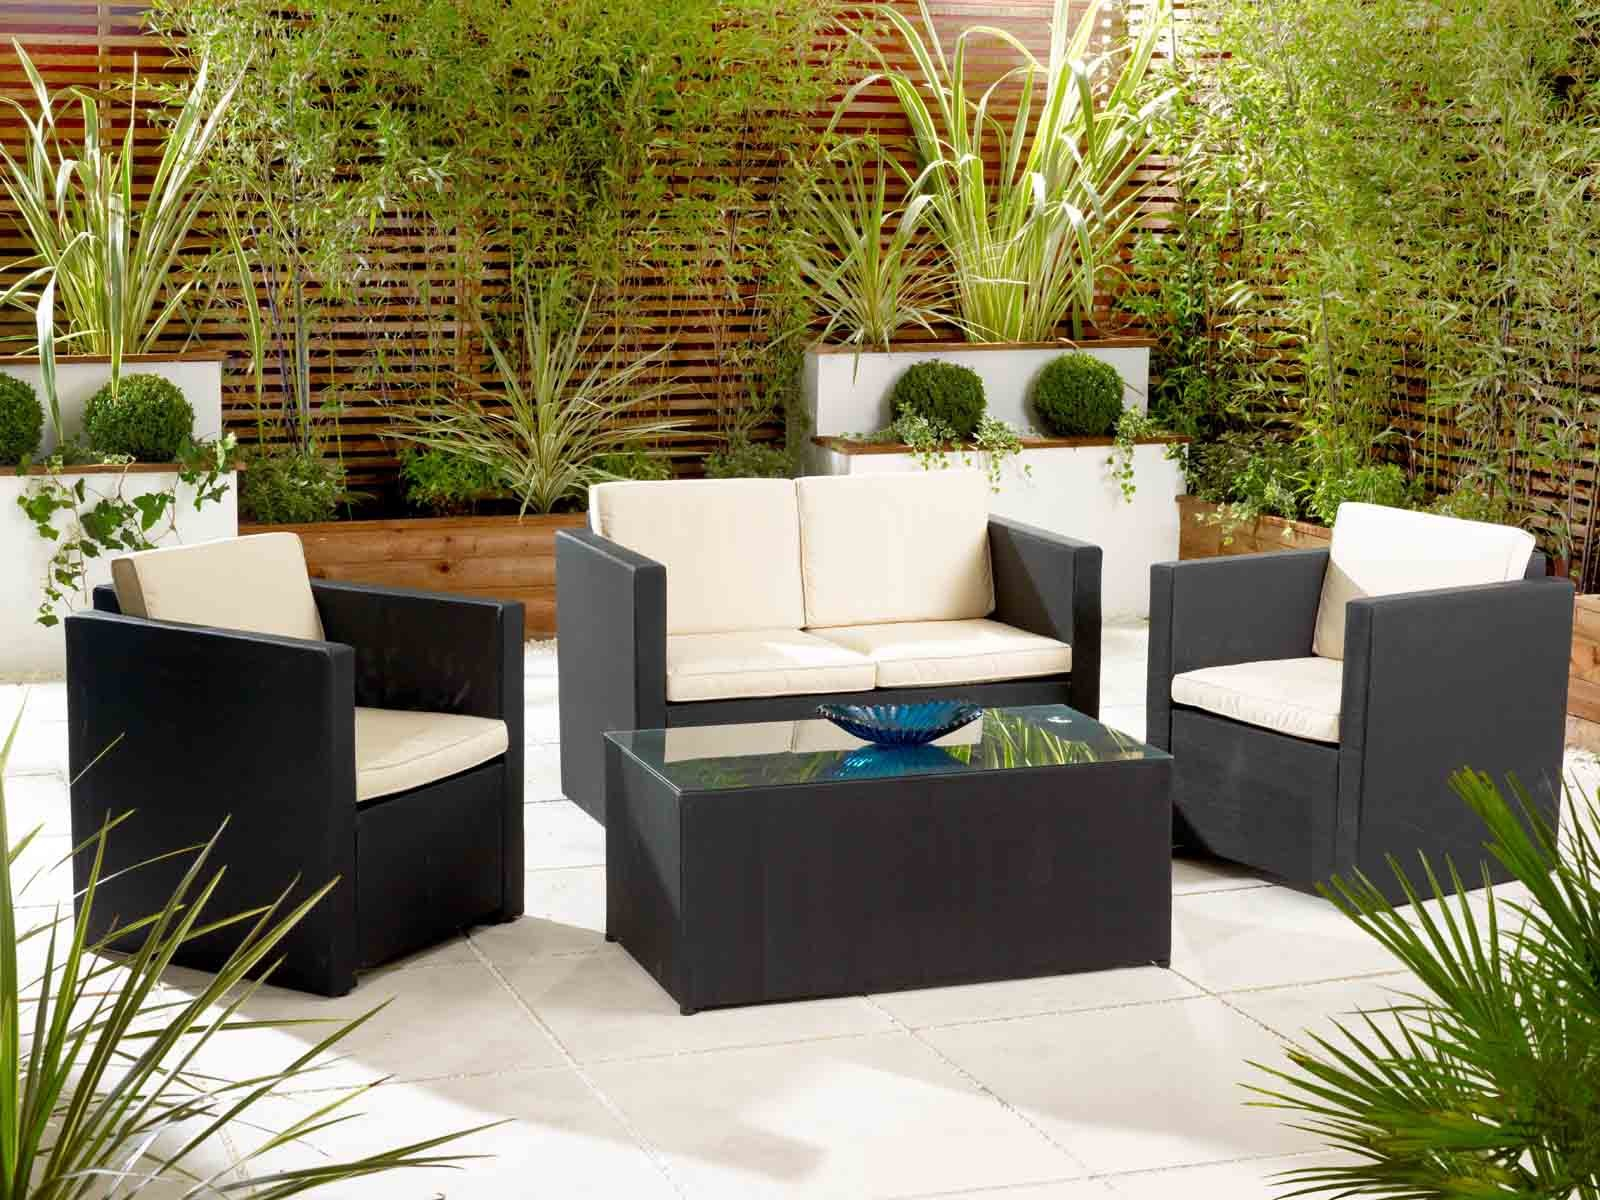 Wicker Outdoor Furniture (View 3 of 10)